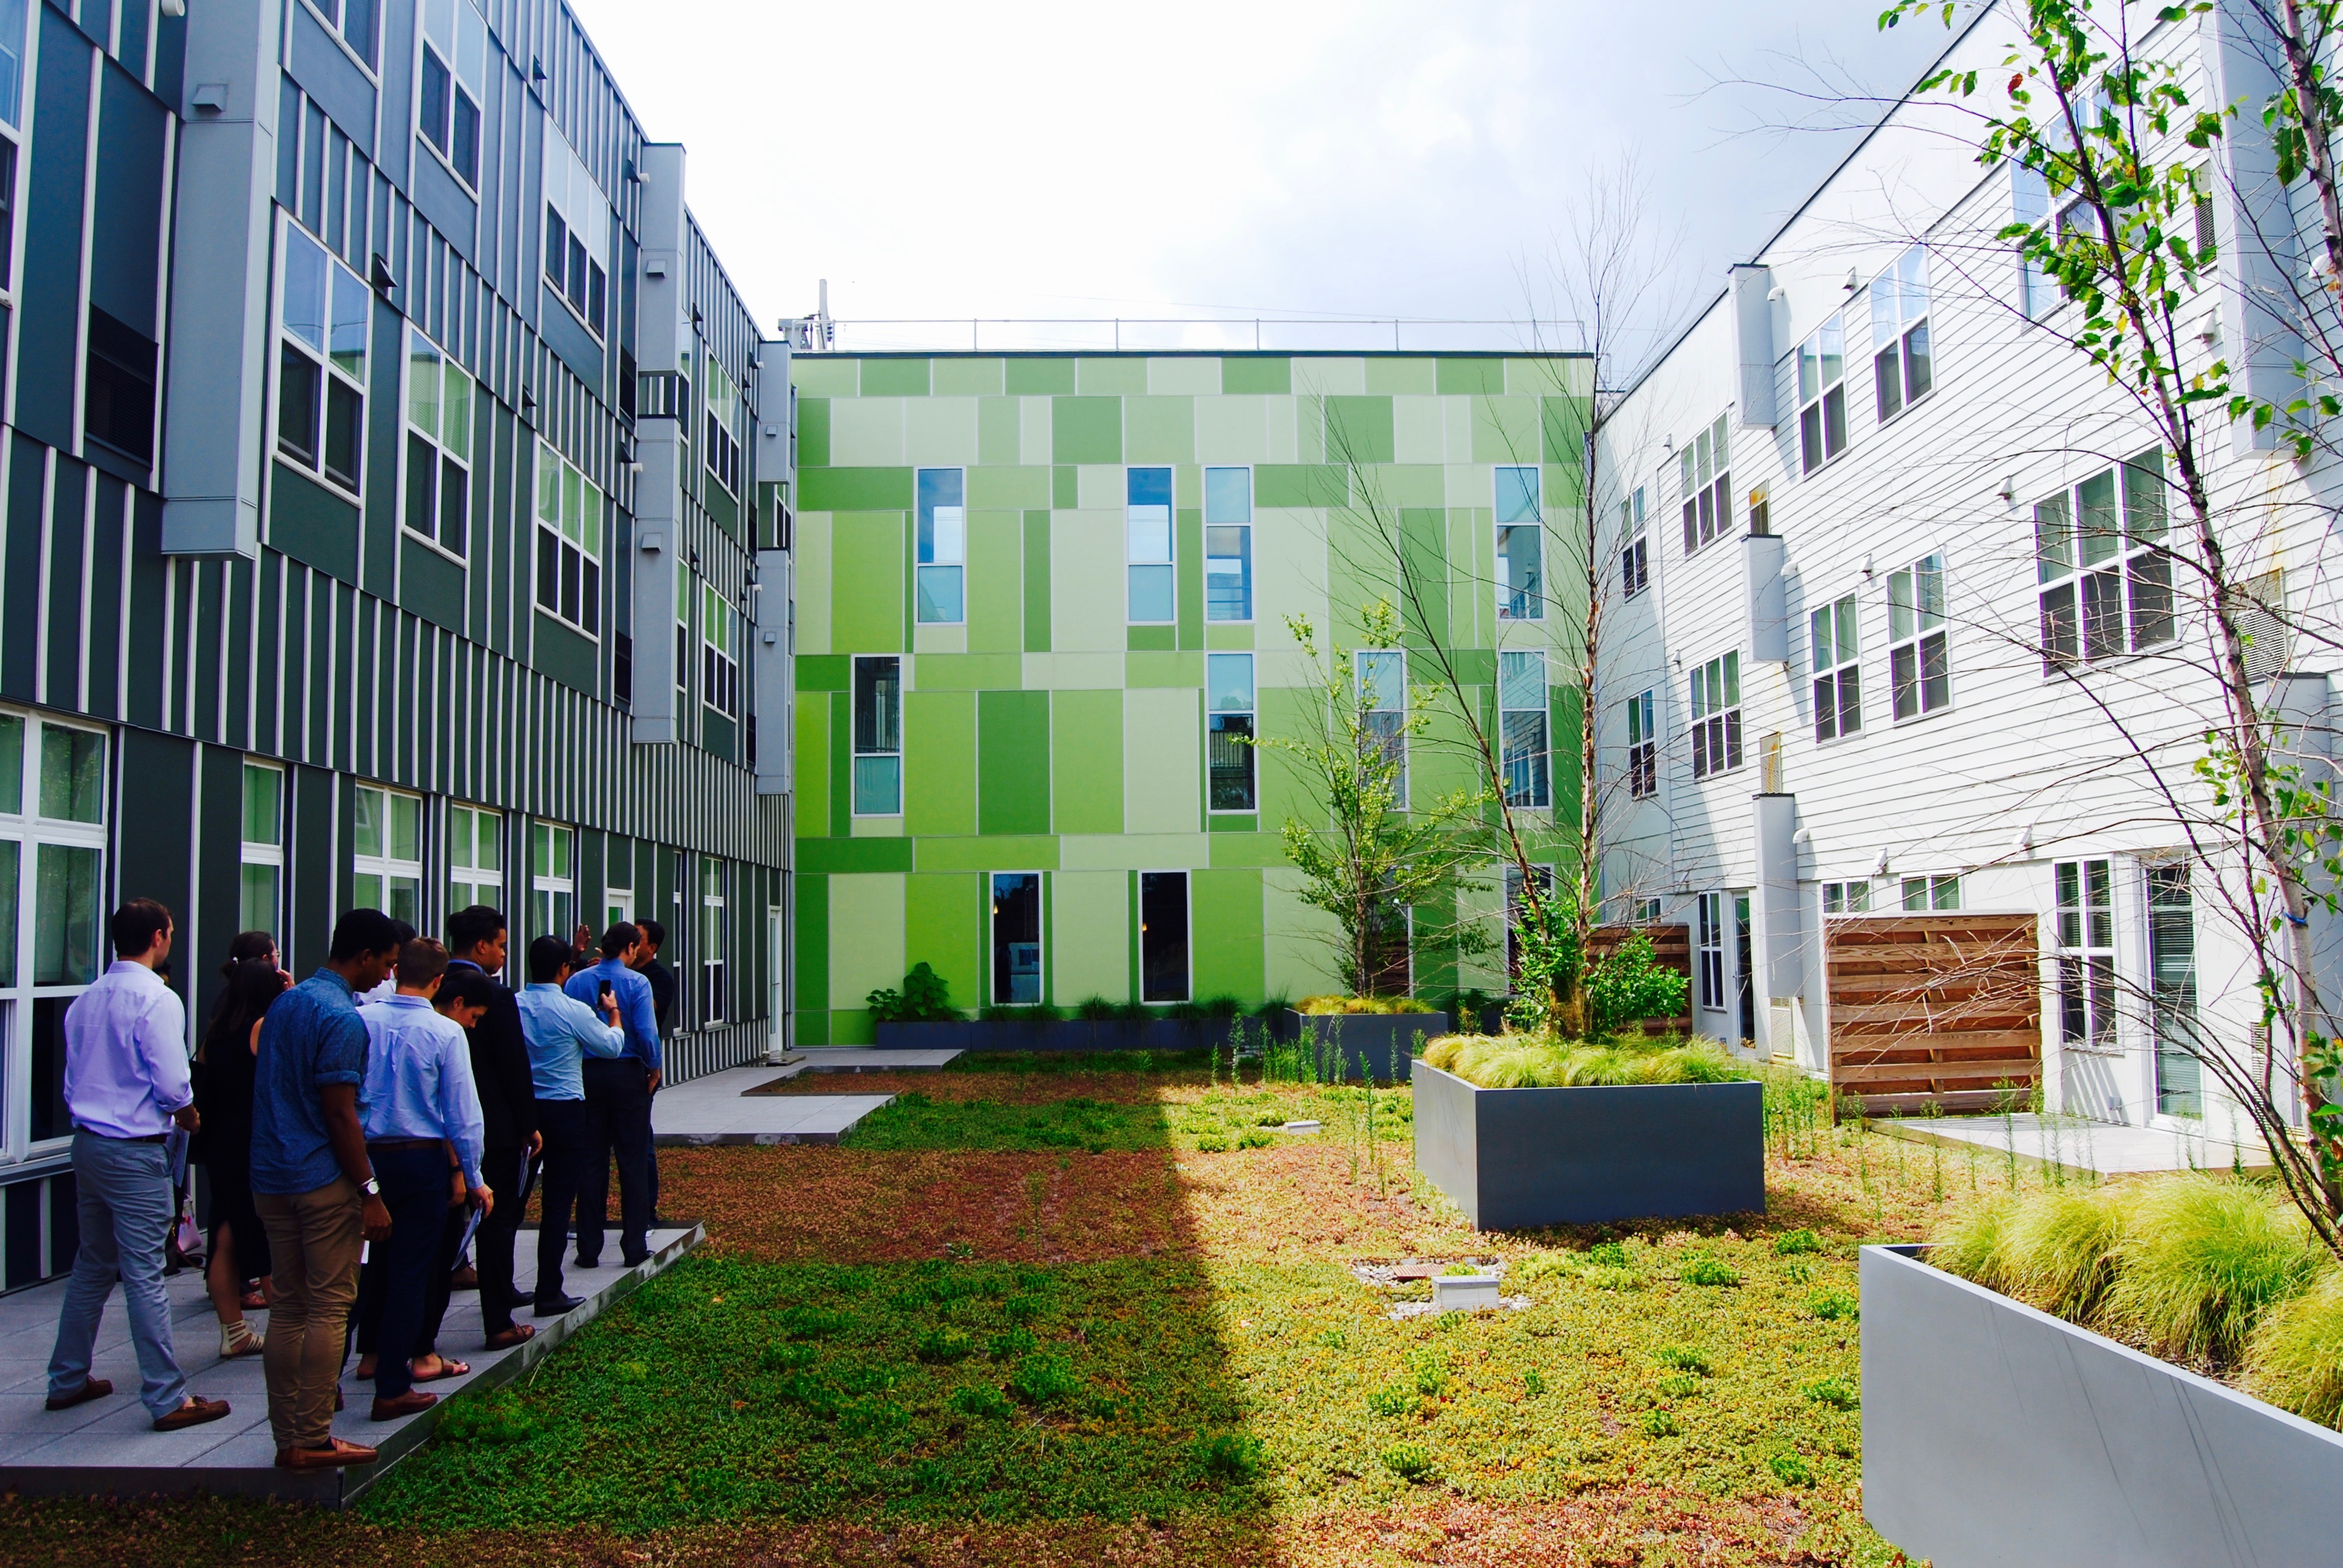 tour group in shady courtyard surrounded by three story buildings